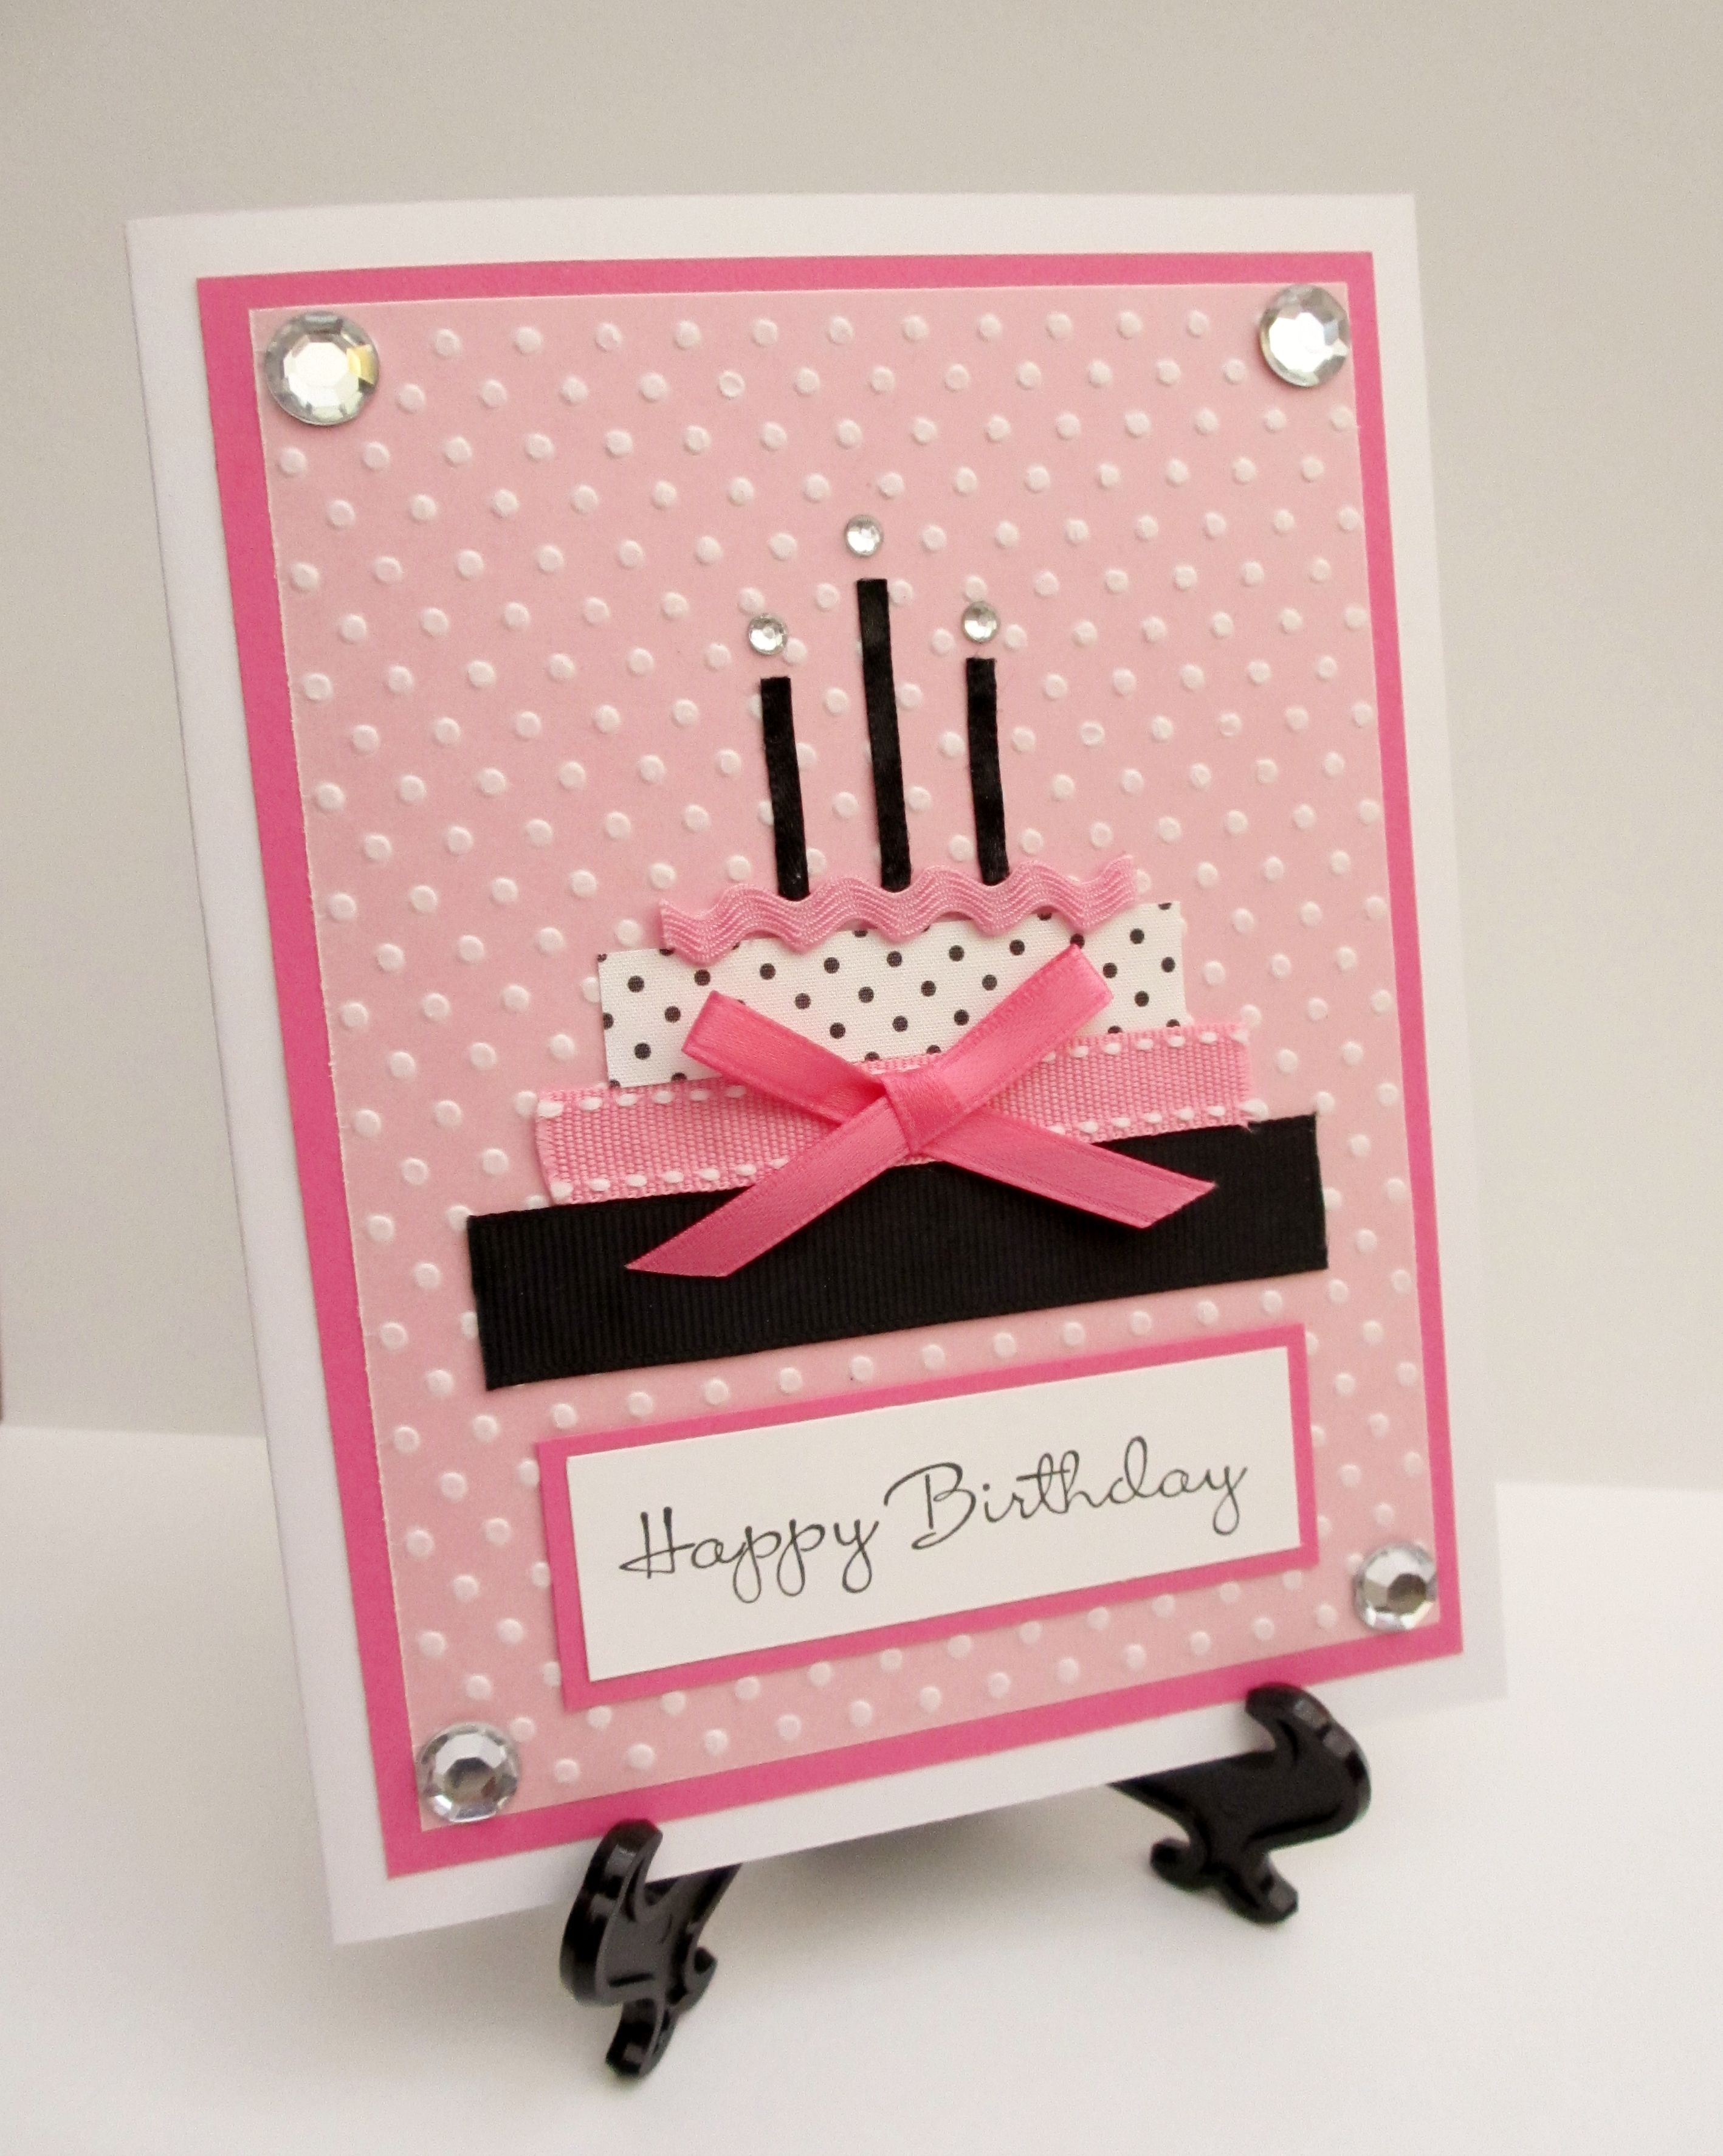 Handmade Sophisticated Pink Black Birthday Cake Card by Anything – Sophisticated Birthday Cards